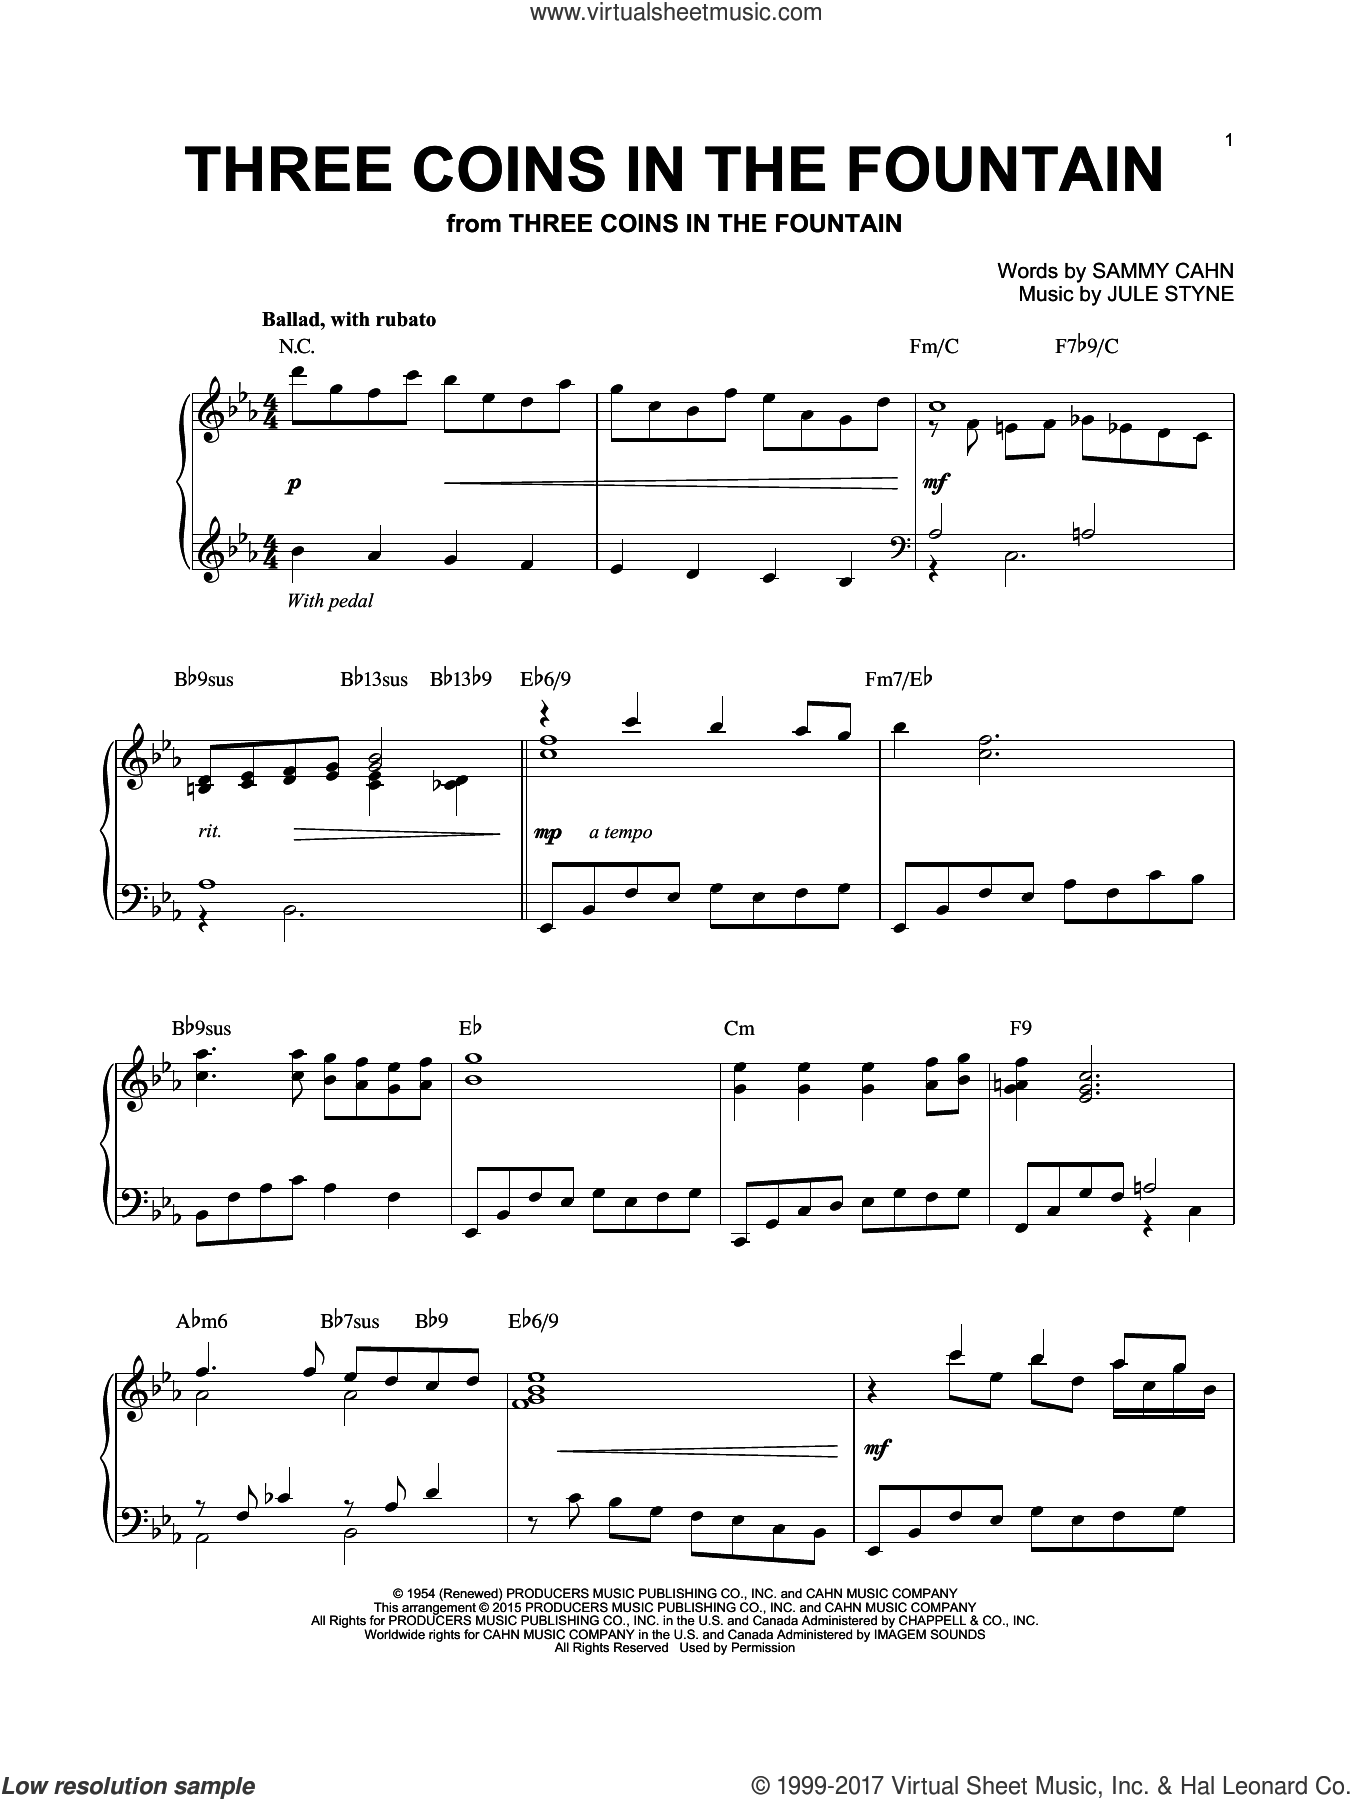 Three Coins In The Fountain sheet music for piano solo by The Four Aces, Jule Styne and Sammy Cahn, intermediate skill level